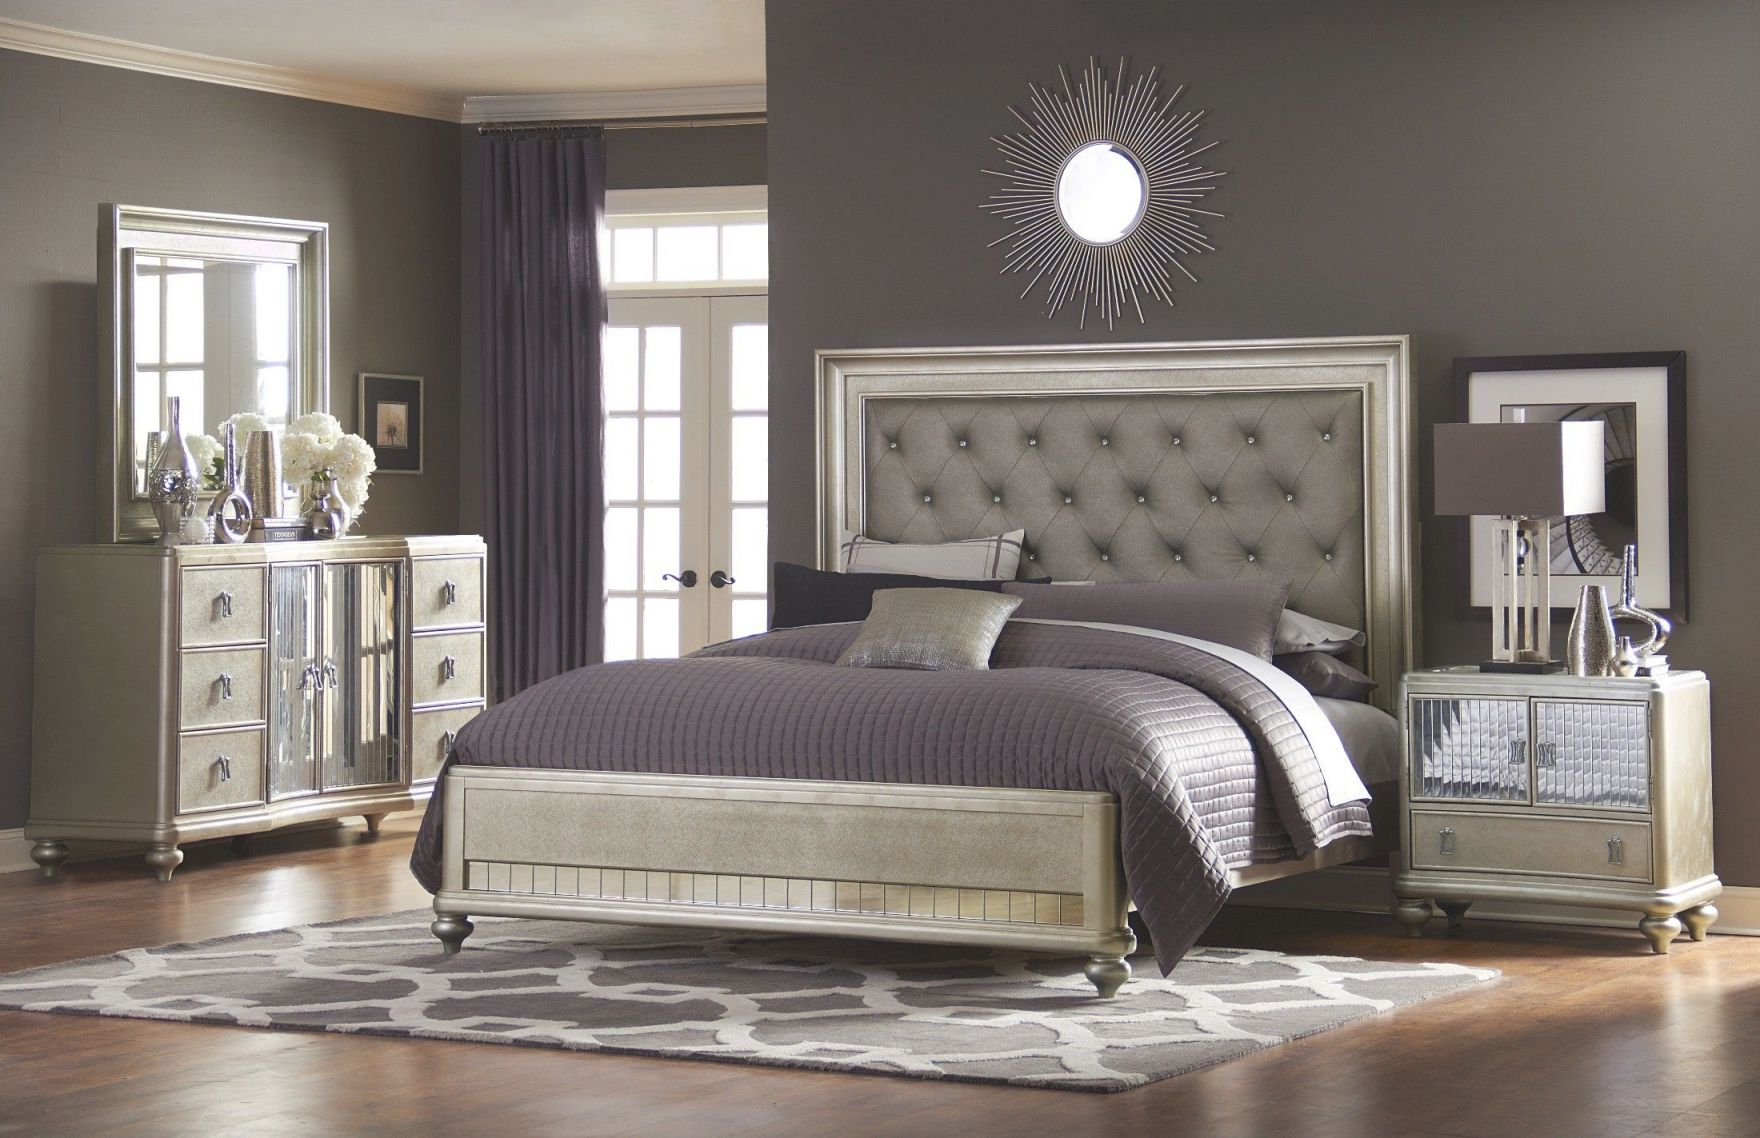 Platinum Platform Bedroom Set | Furniture Bedroom | Platform with Fresh Bedroom Set Ideas